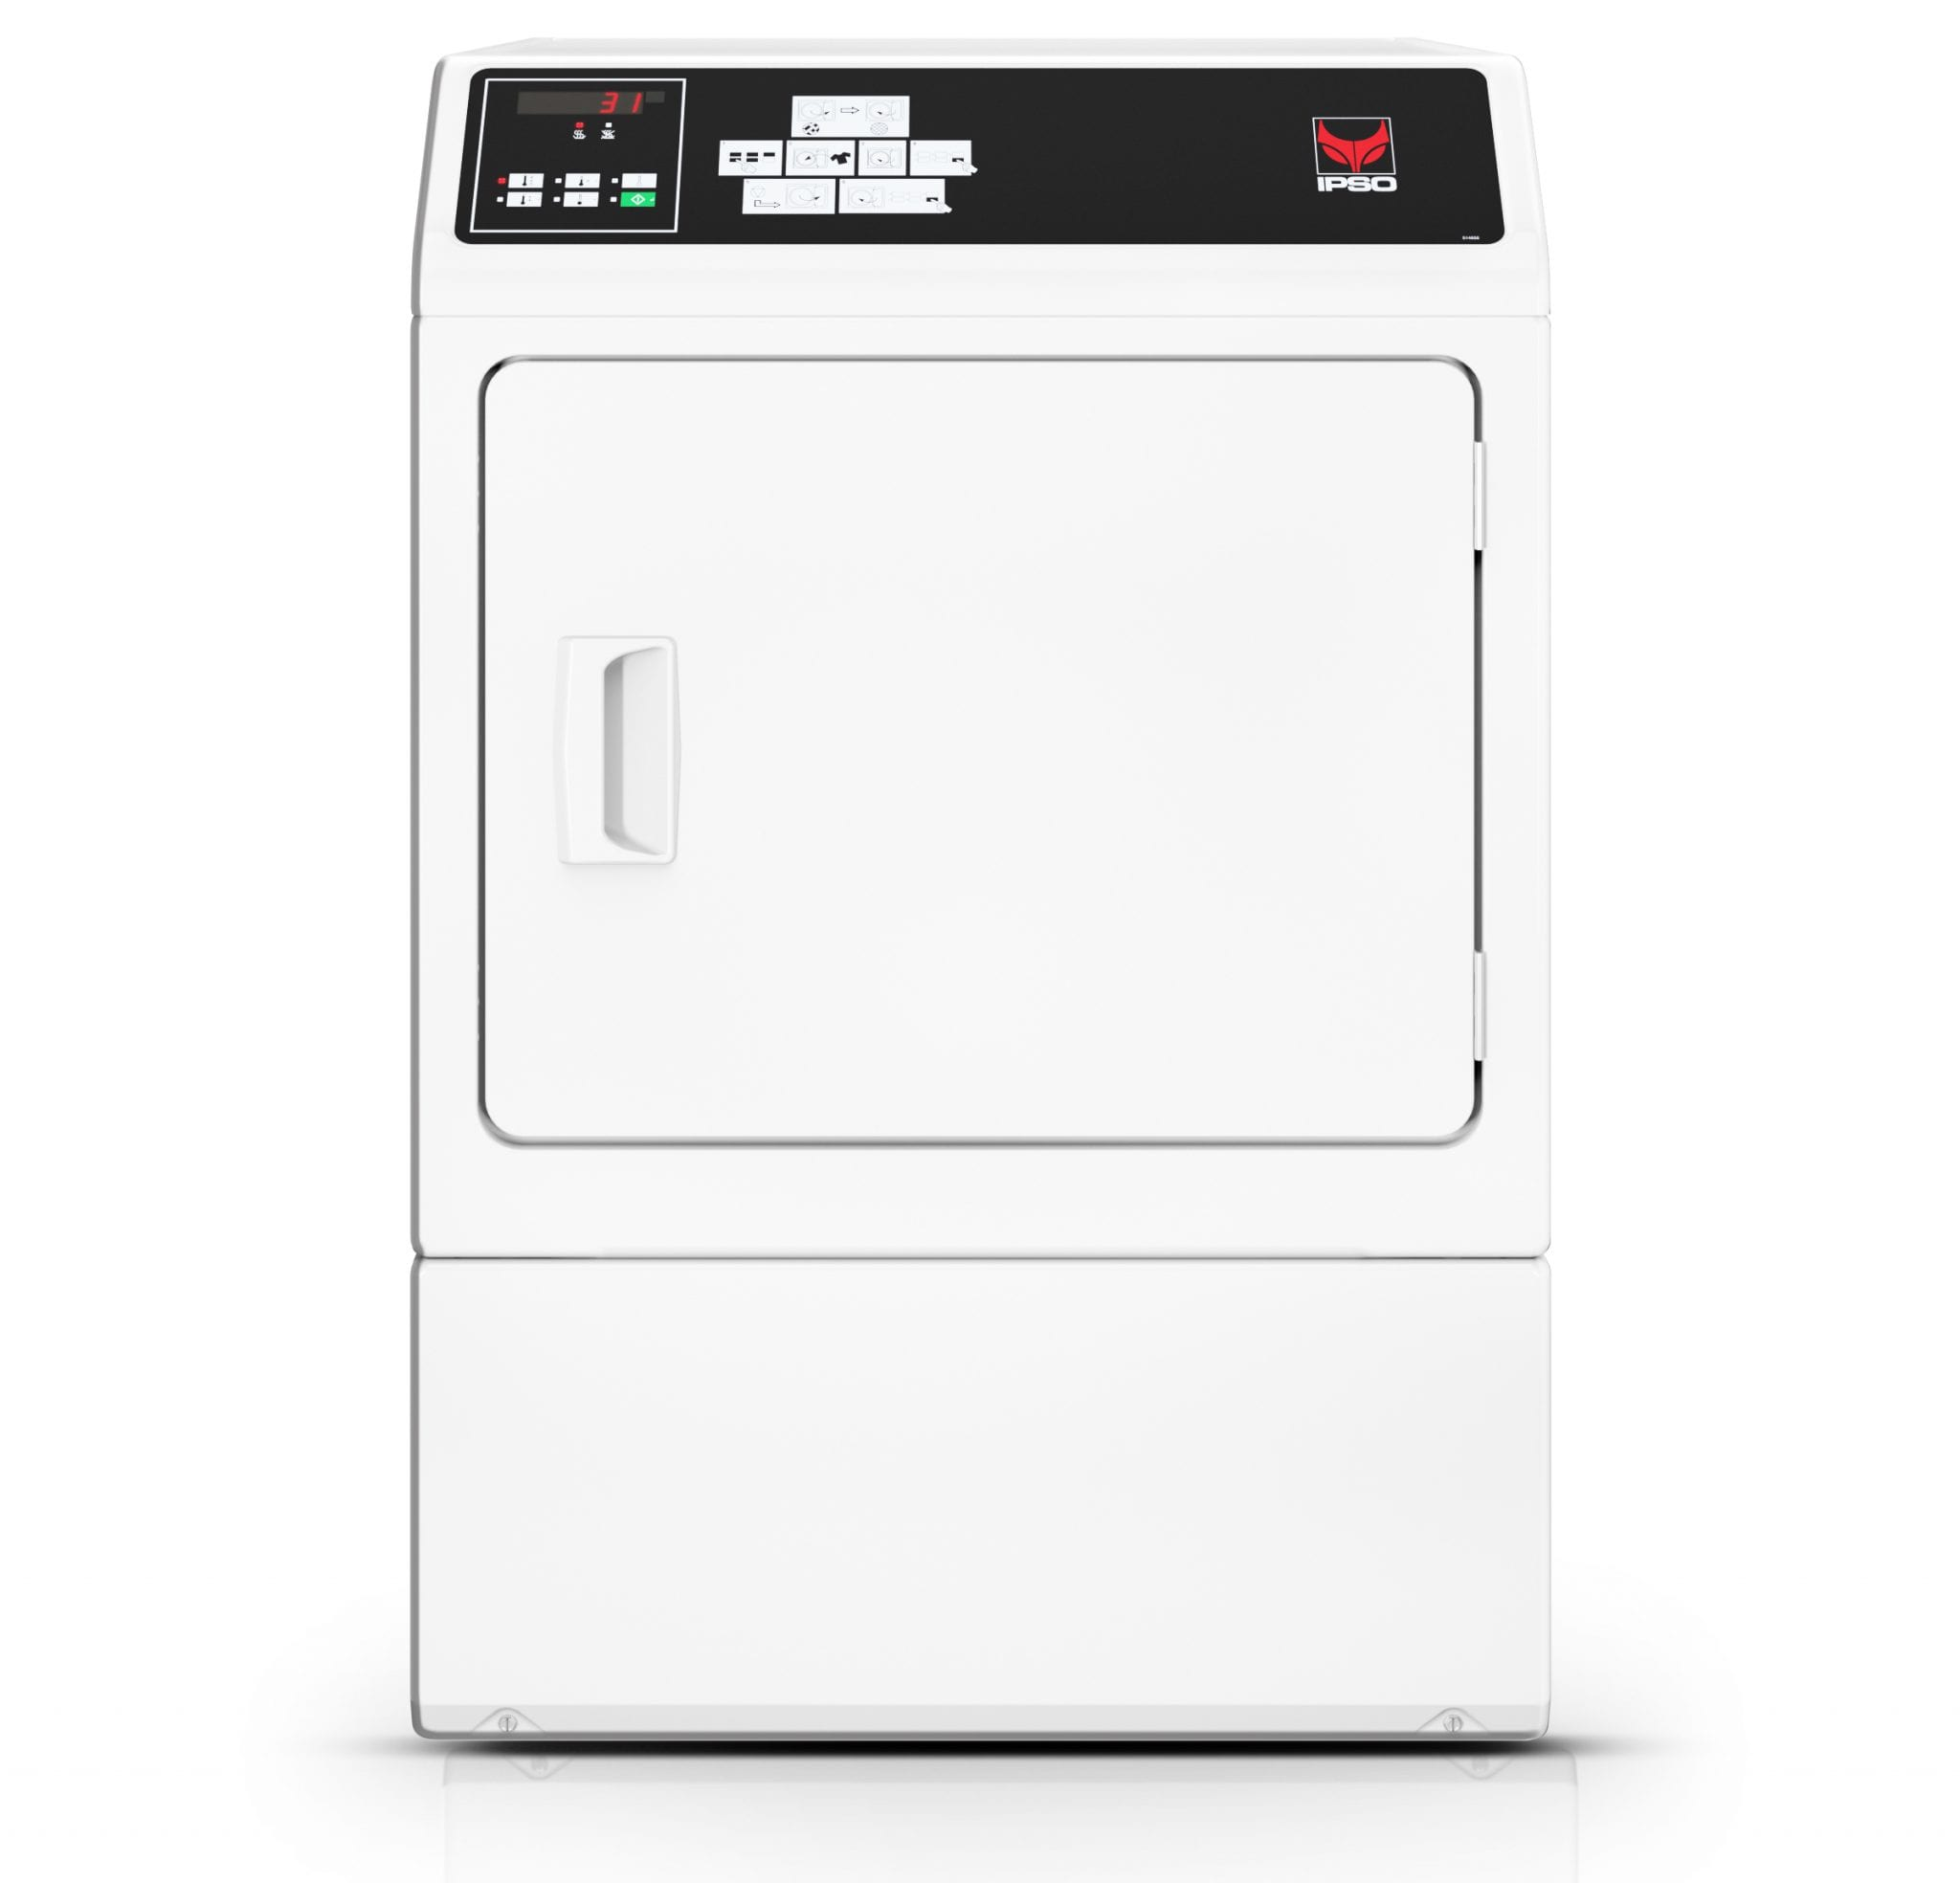 IPSO commercial laundry dryer